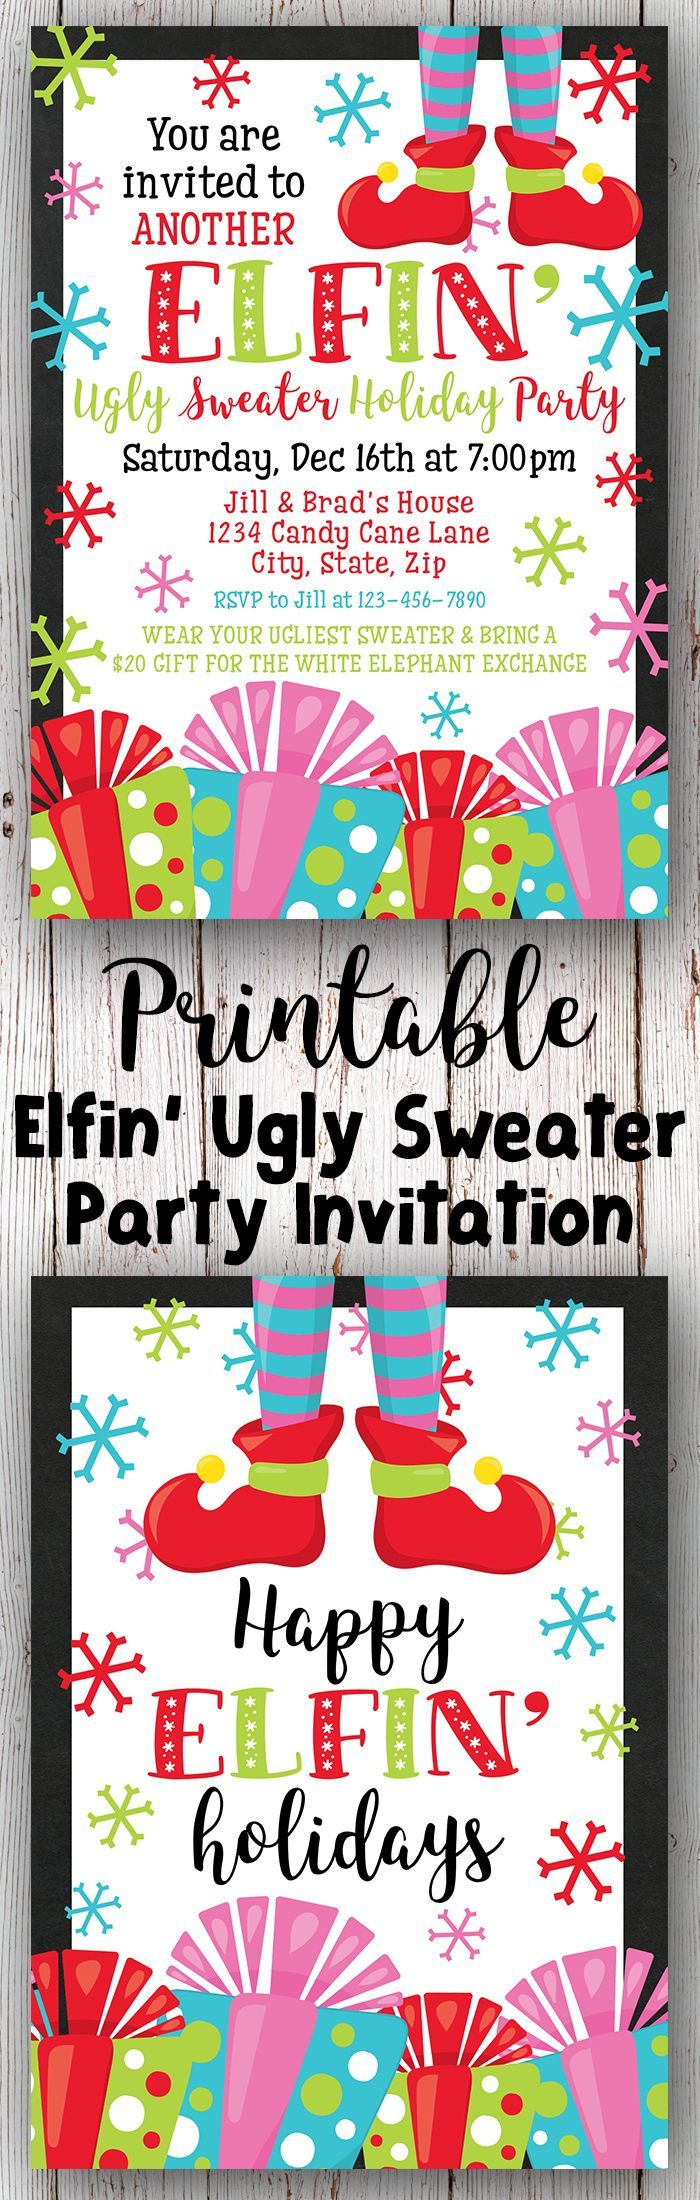 Best 25+ Ugly sweater party invites ideas on Pinterest | Ugly ...